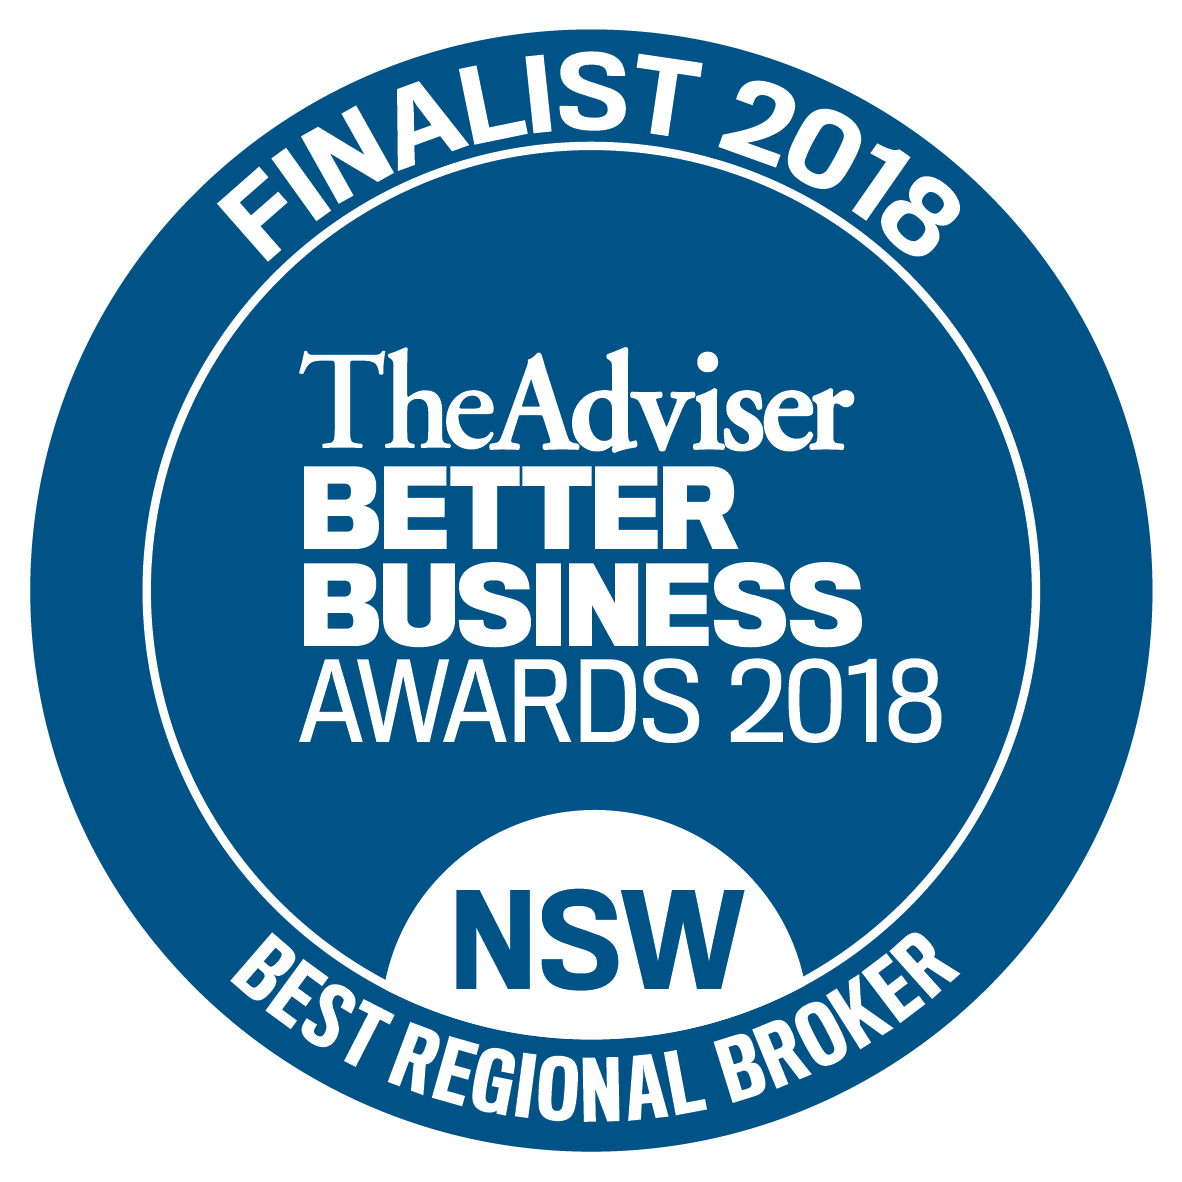 BBS_Finalists__Best Regional Broker.png